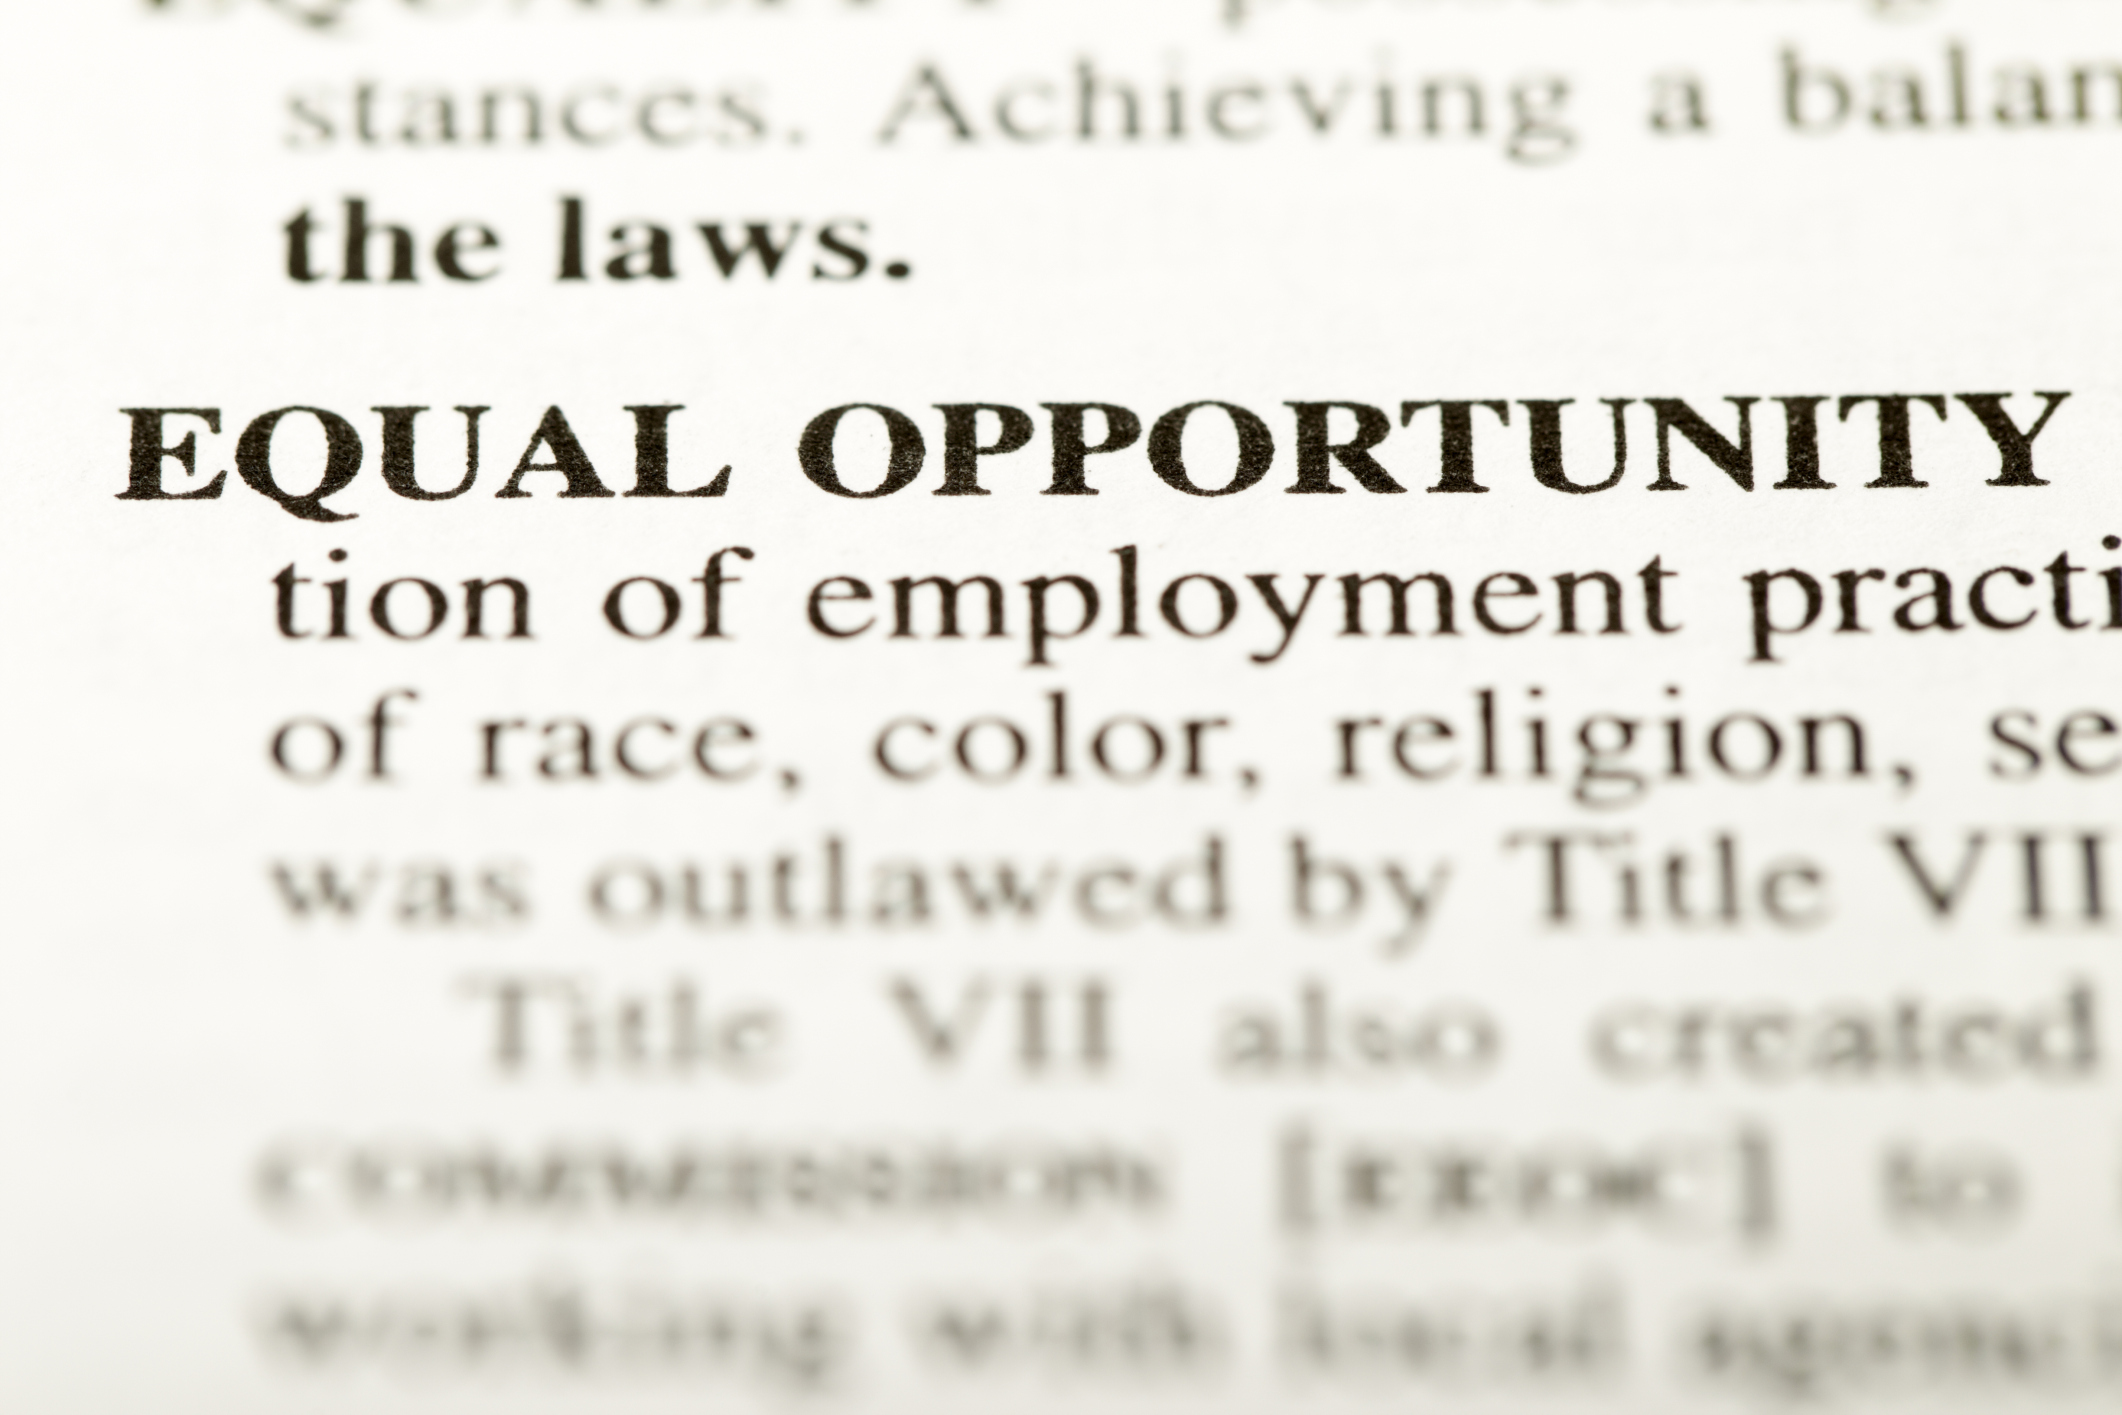 equal opportunities in the workplace essay Writepass - essay writing - dissertation topics [toc]introductionresearch approachfindingsfindings from secondary researchimportance of managing workplace diversitychallenges of workplace diversity managementfindings from primary researchresponses in support of workplace diversityresponses against workplace diversityconclusionrelated abstract diversity in.